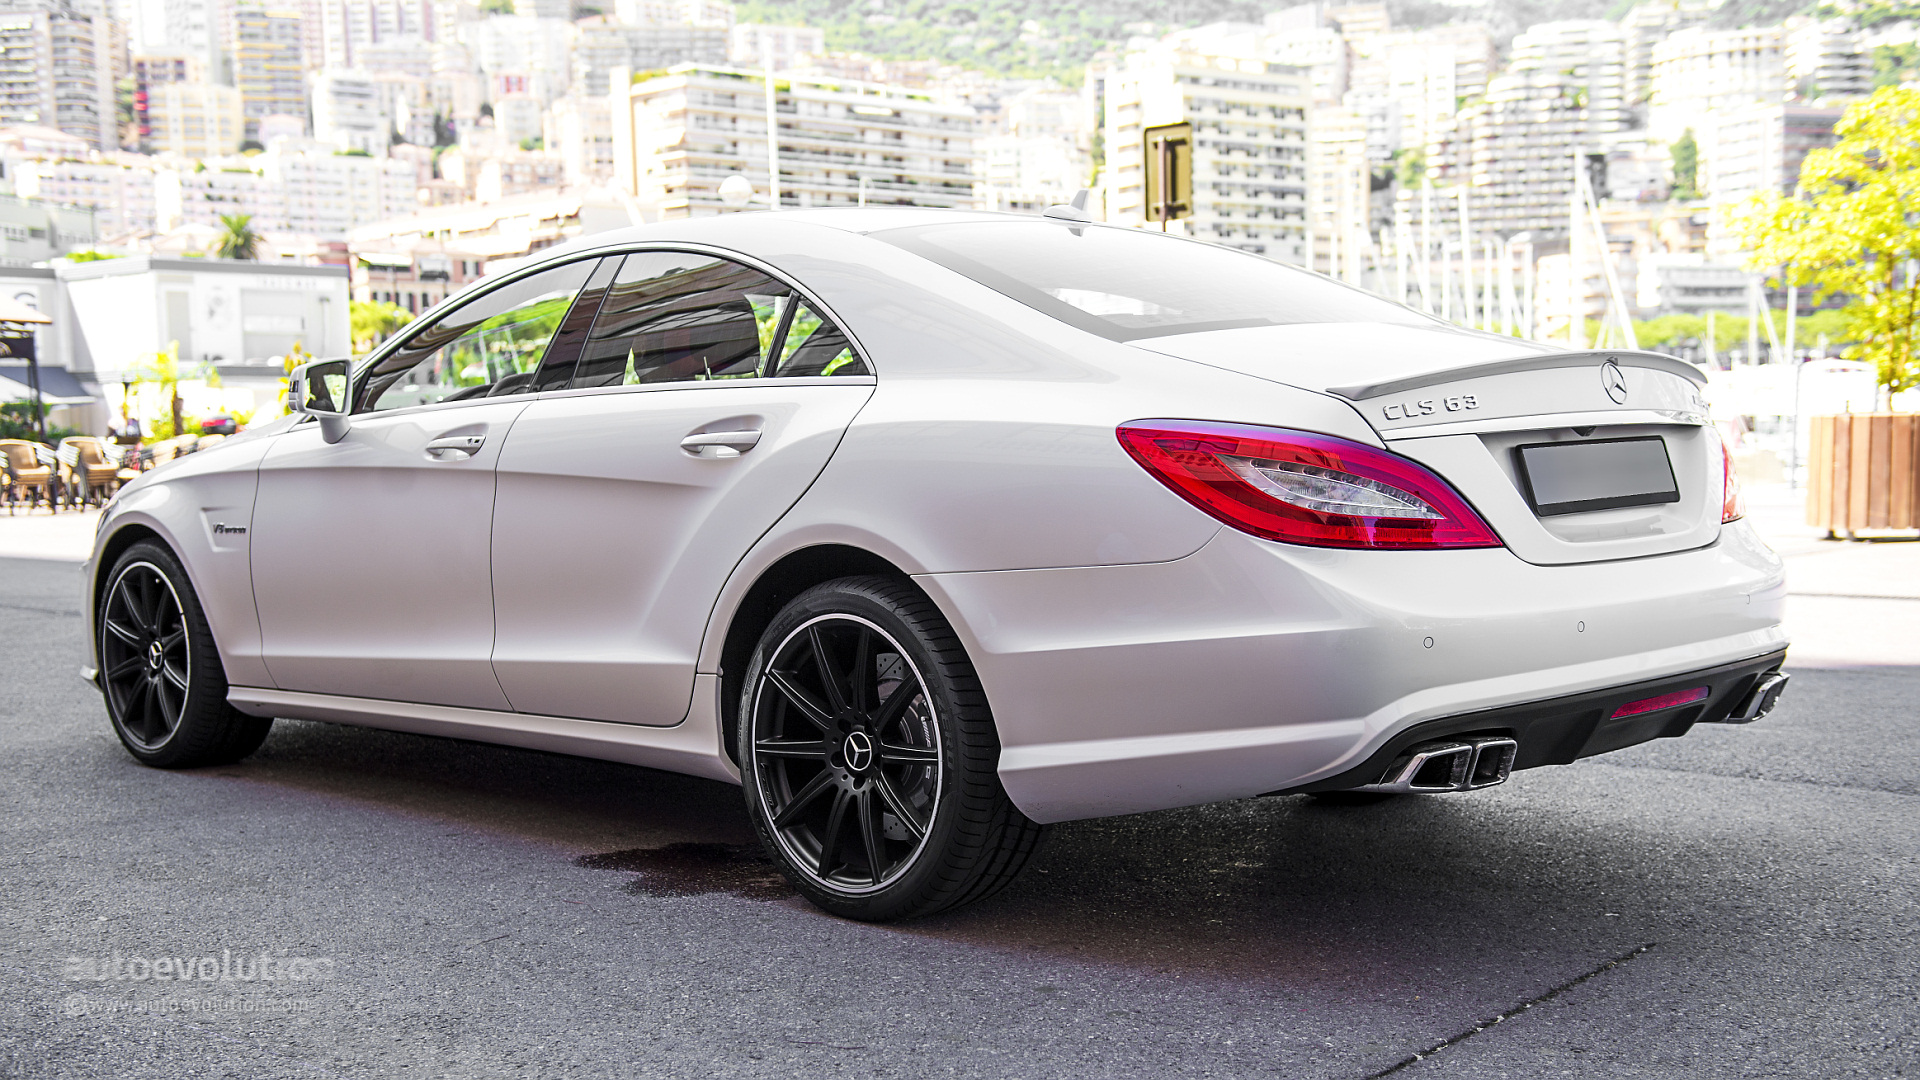 Mercedes benz cls 63 amg 4matic tested by autoevolution for Mercedes benz amg cls